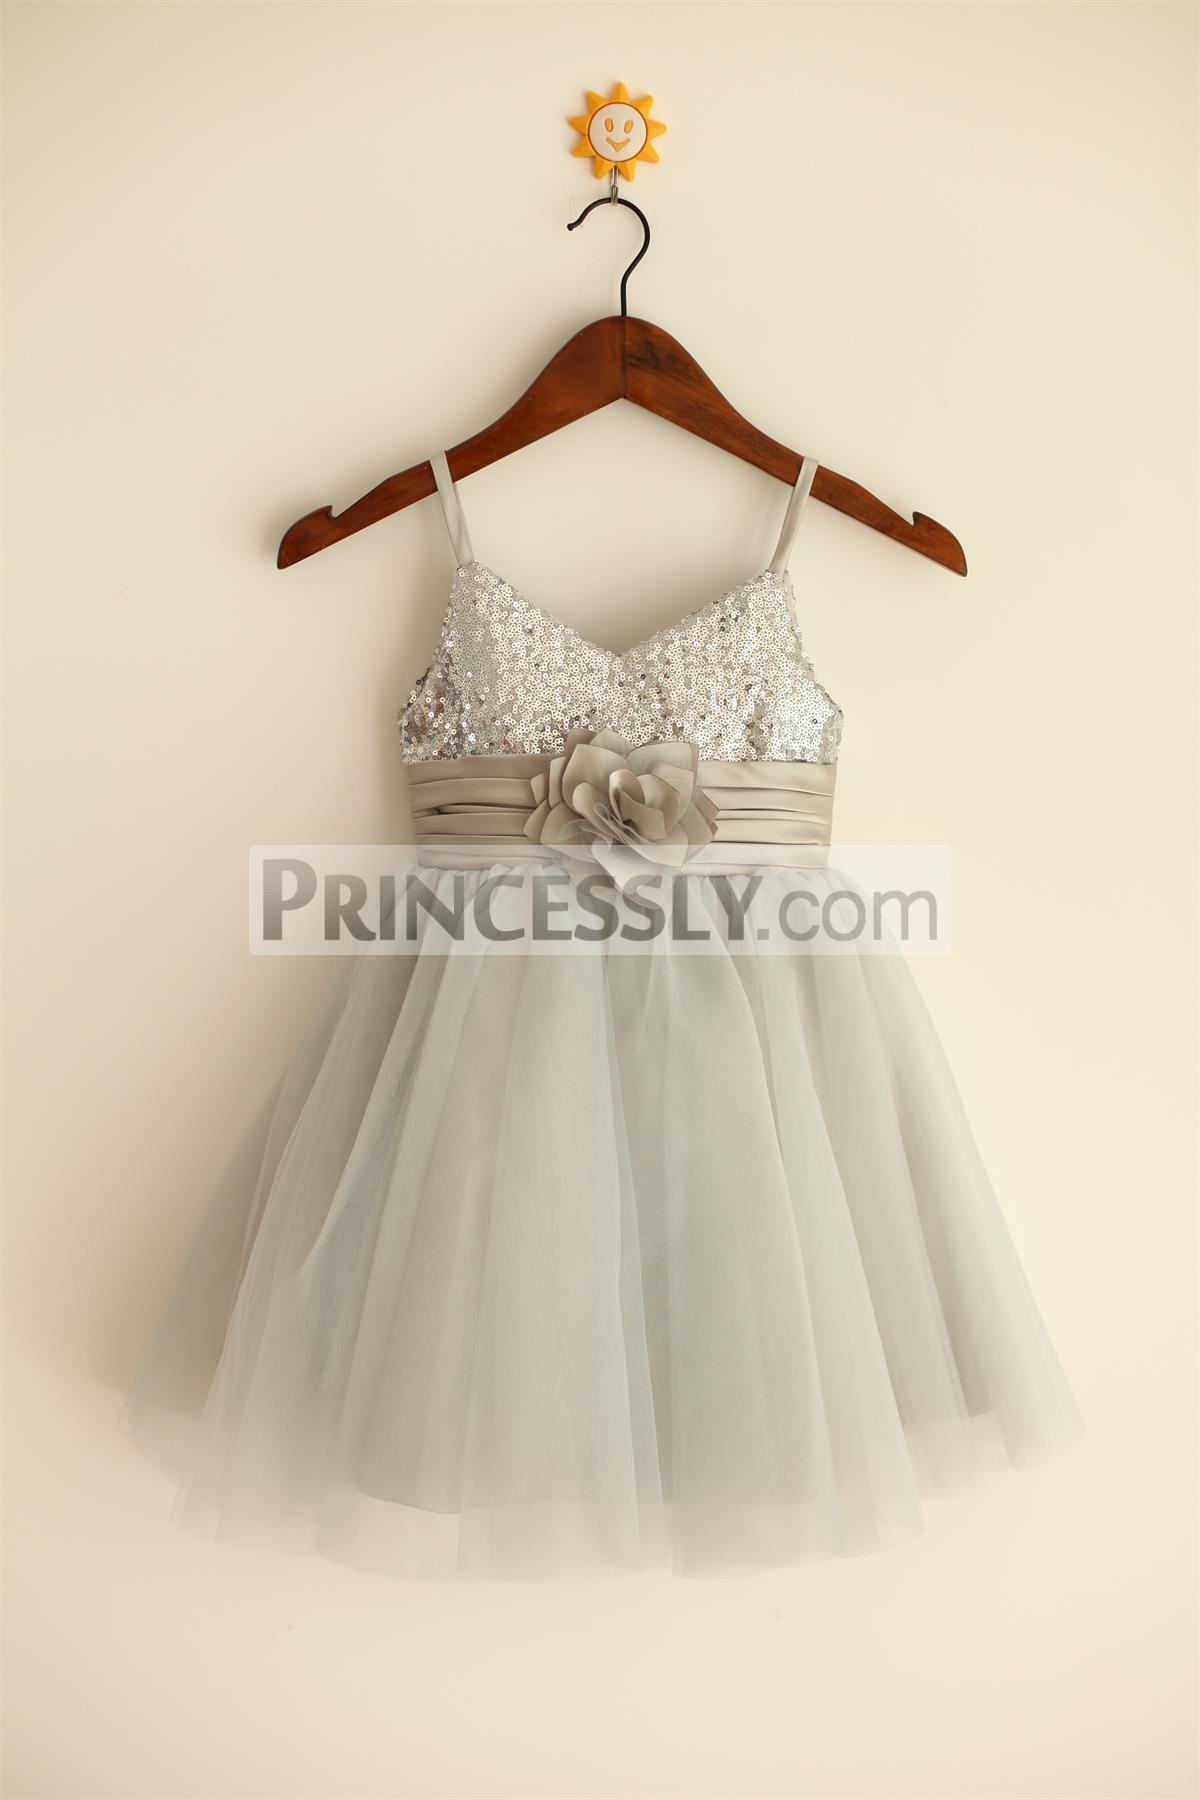 739002ac73 Thin Straps Silver Sequins Gray Tulle Flower Girl Dress with Flower ...